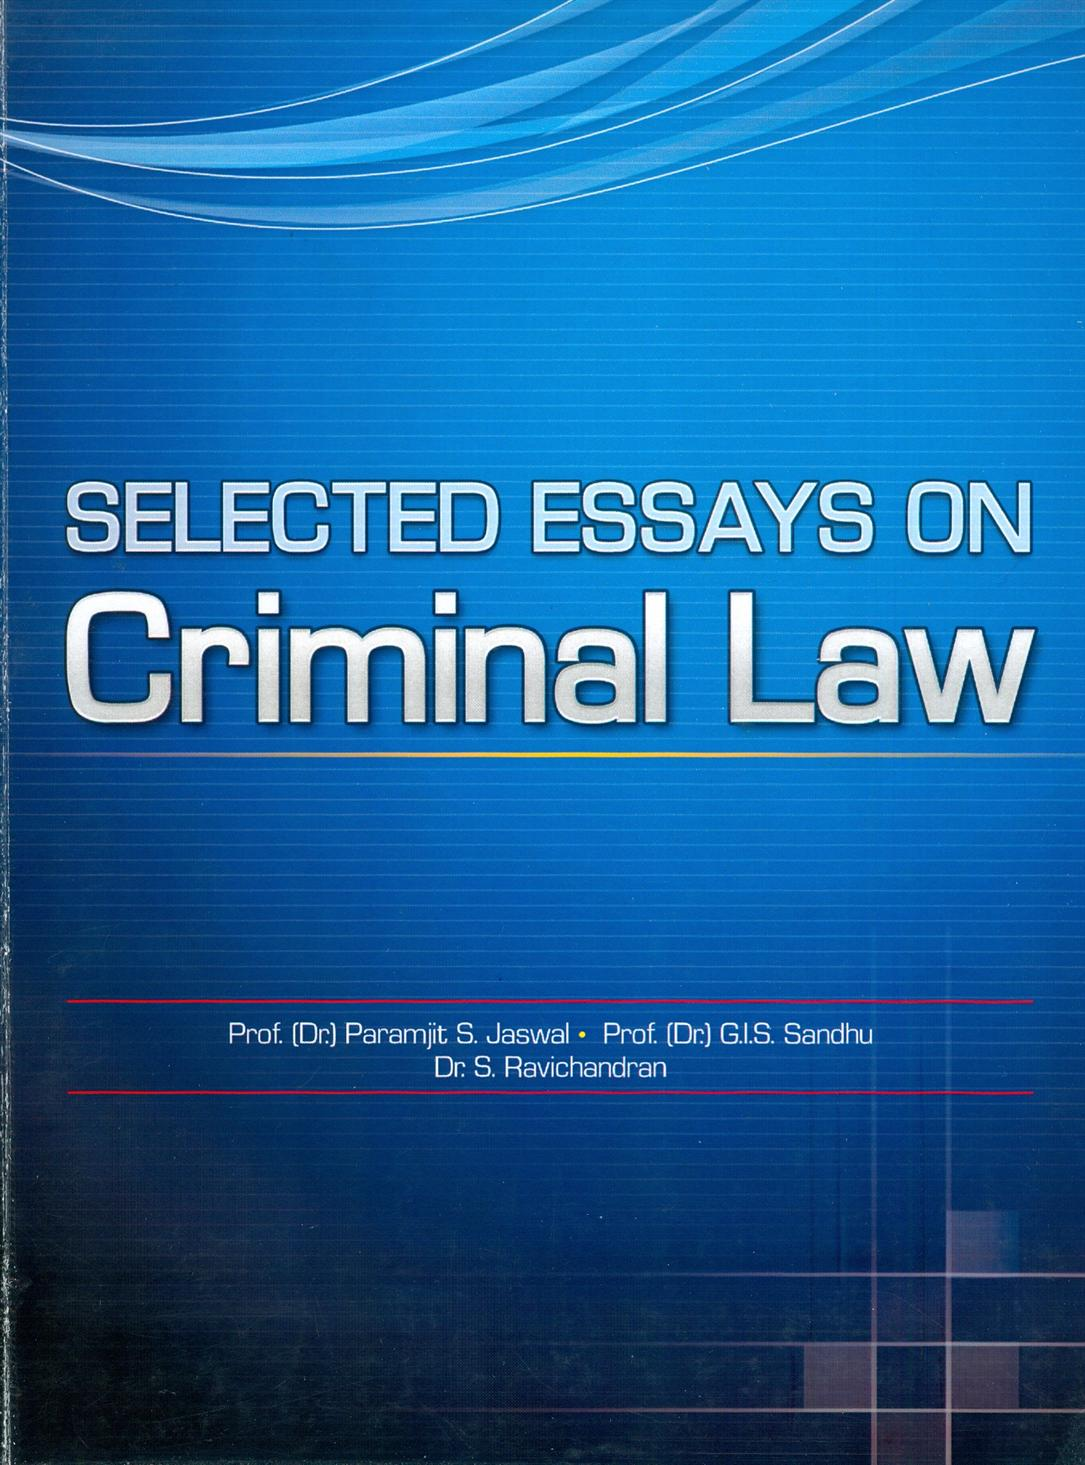 welcome to rajiv gandhi national university of law punjab selected essays on criminal law author edited book prof dr paramjit s jaswal prof dr g i s sandhu and dr s ravi chandran view detail